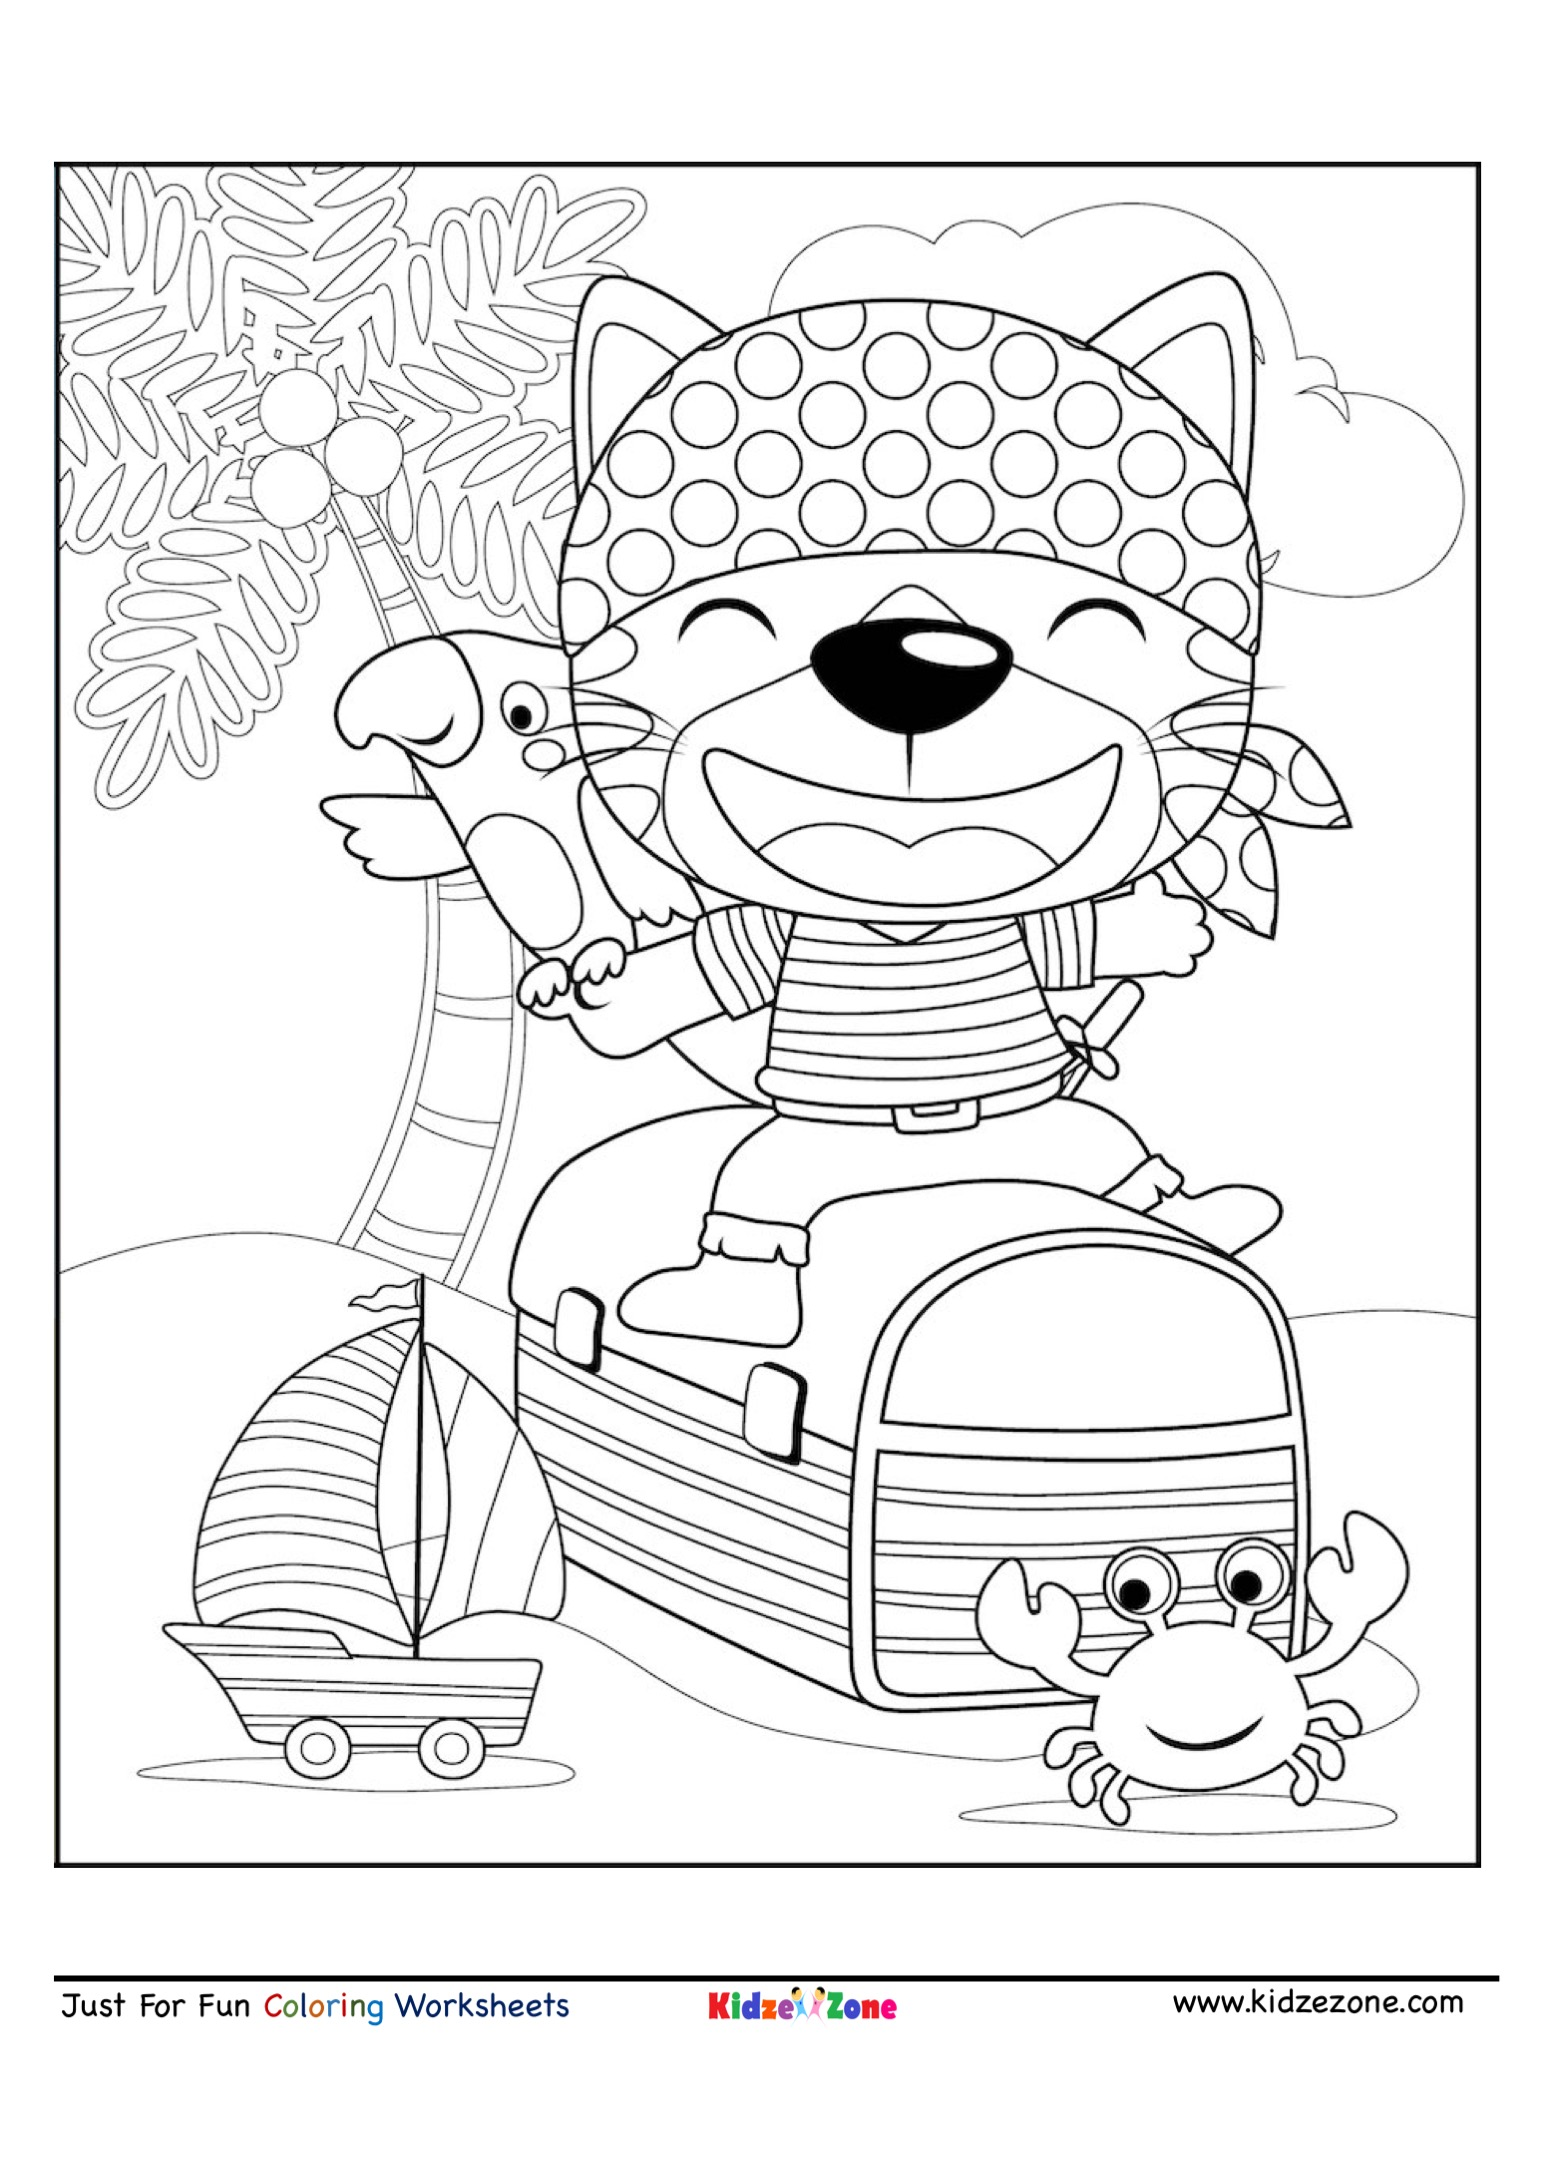 Pirate Bear Cartoon Coloring Page Kidzezone